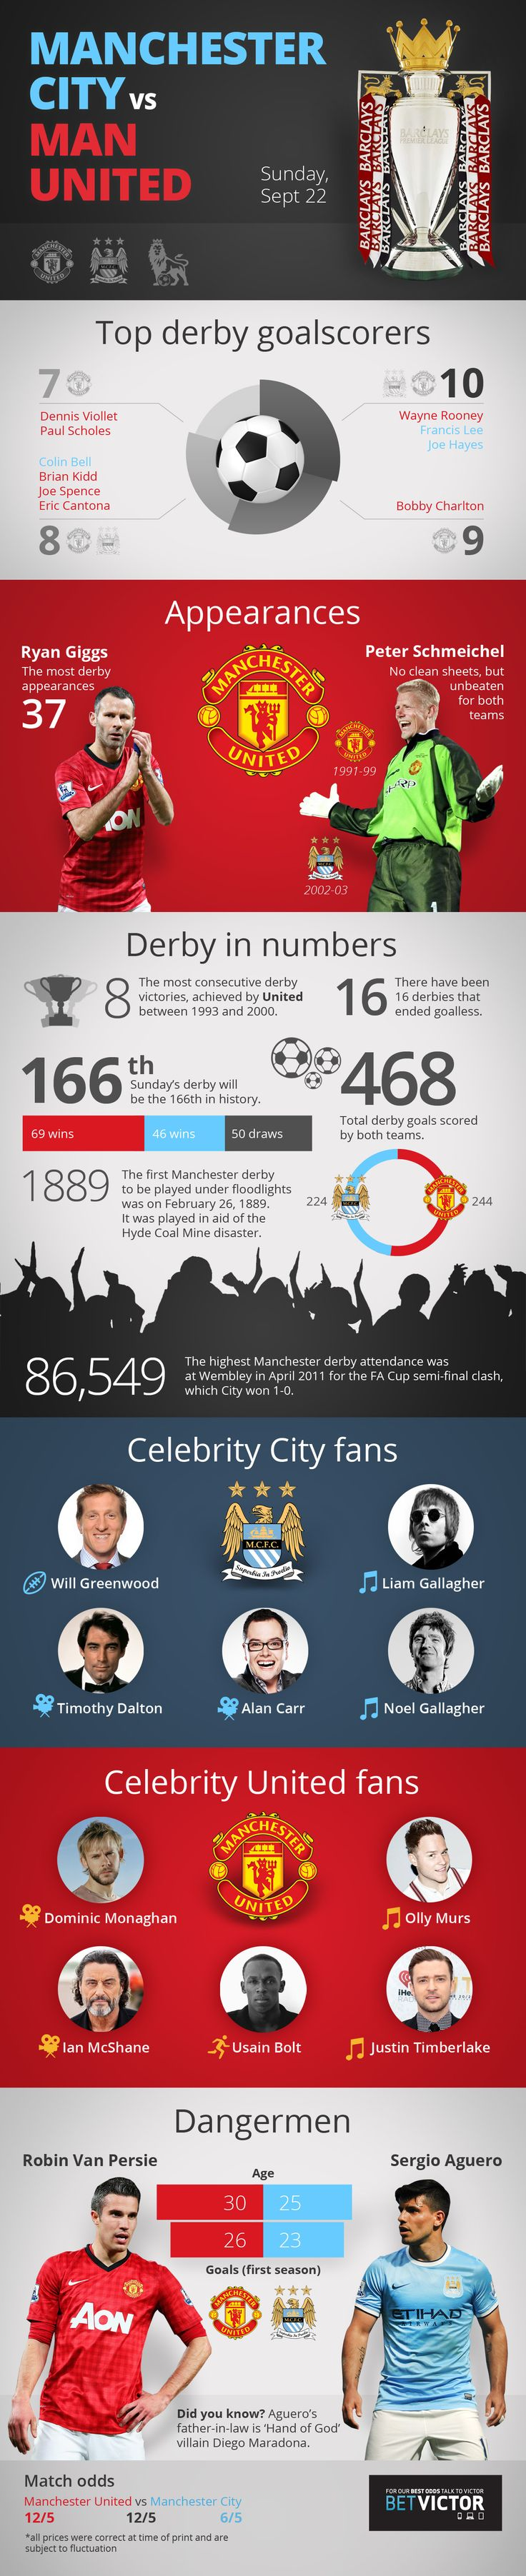 Manchester Derby #infographic #football #devils #derby